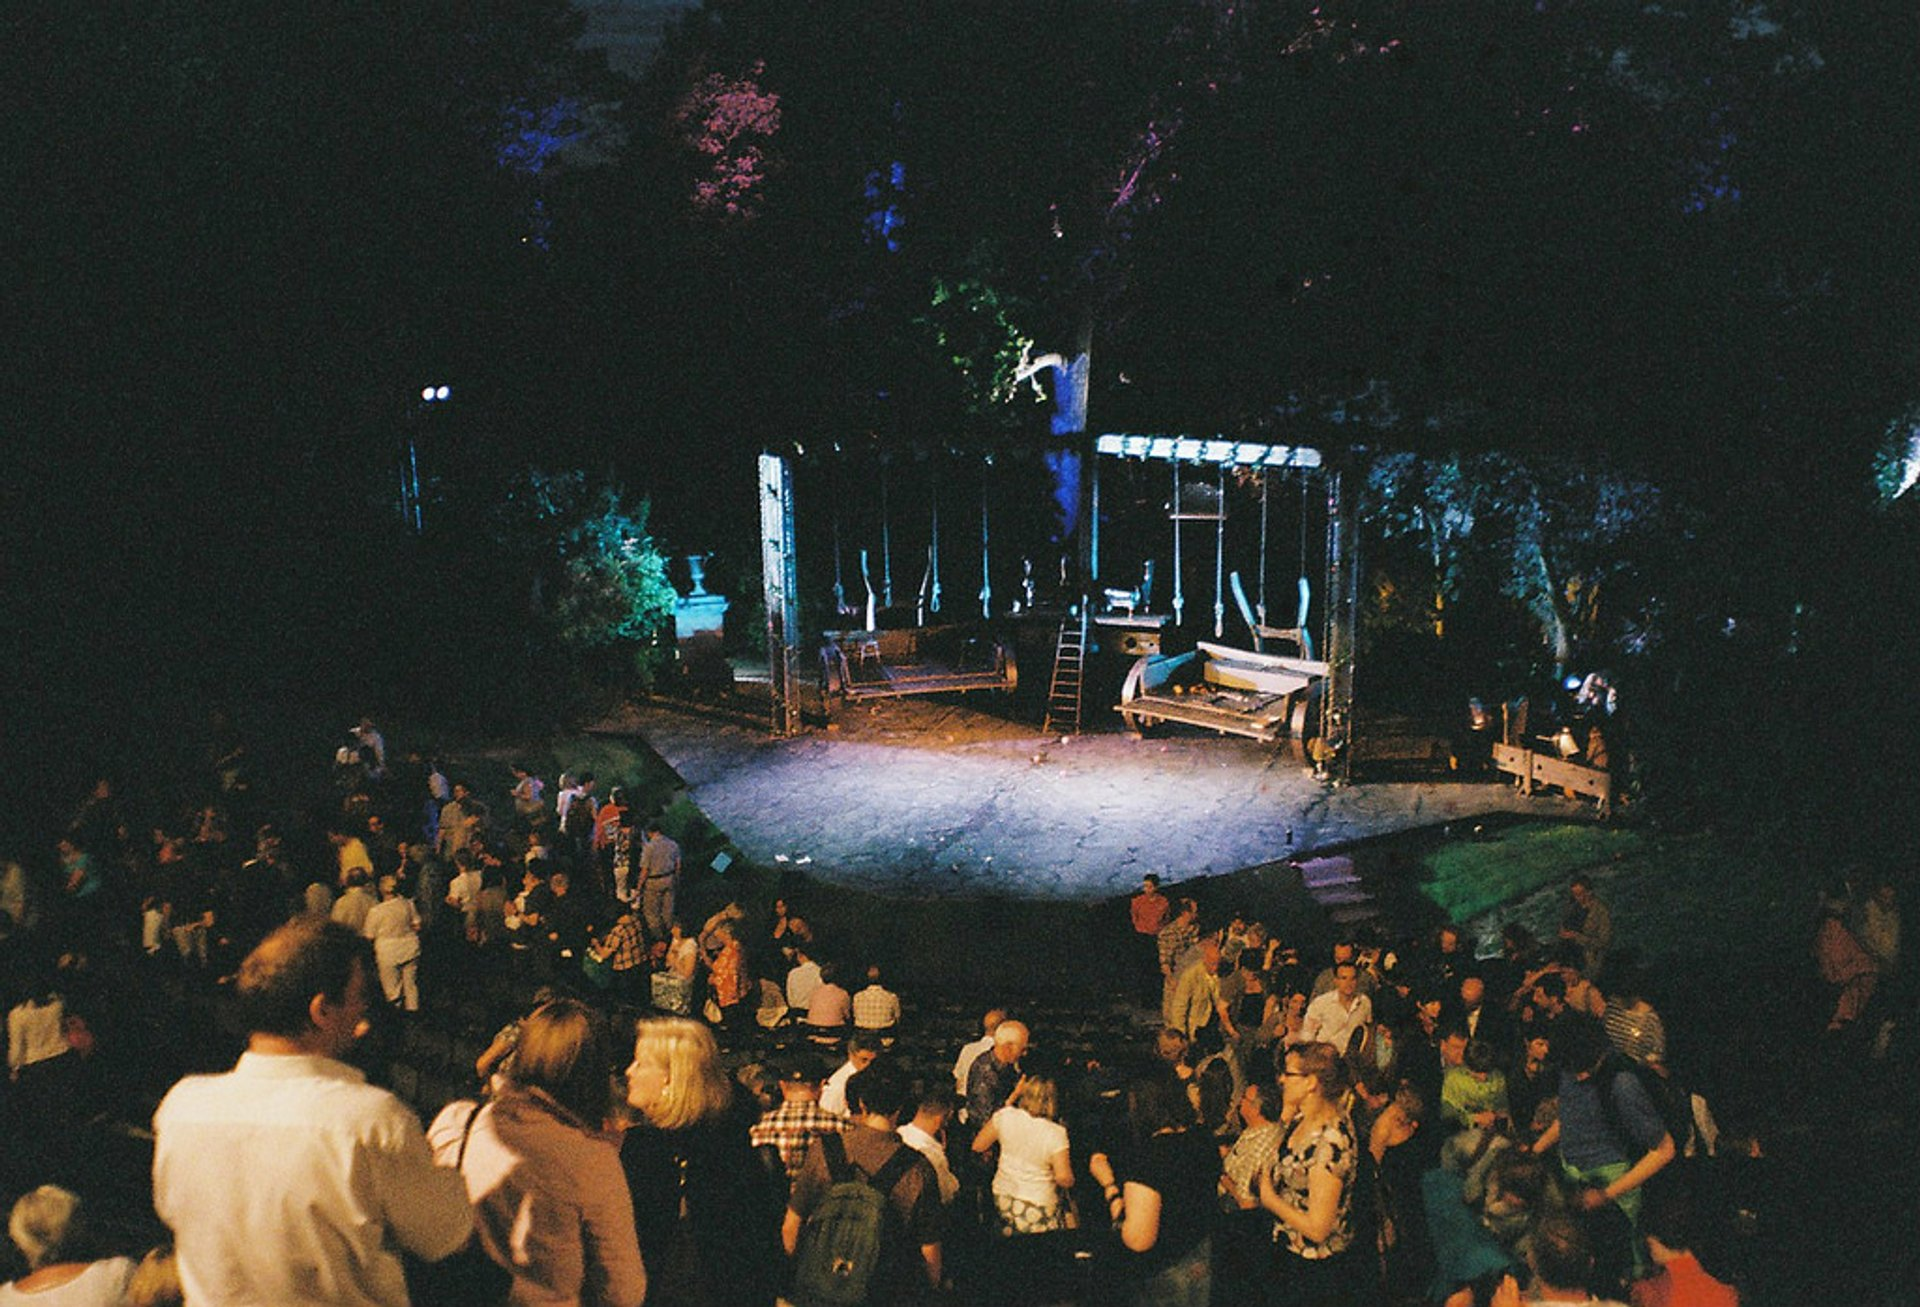 Regent's Park Open Air Theatre in London - Best Season 2020